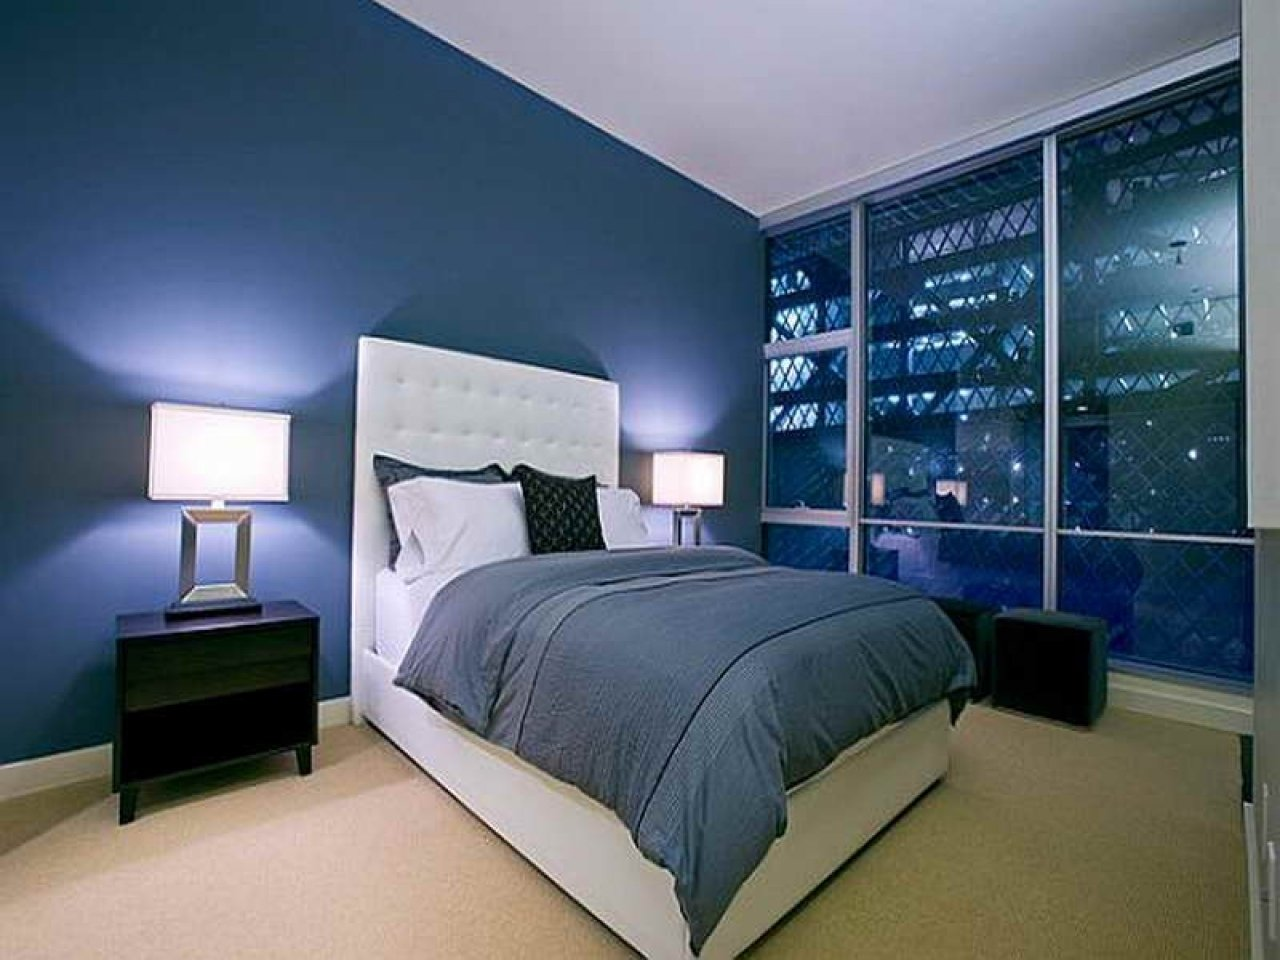 10 Perfect Grey And Blue Bedroom Ideas elegant grey bedroom ideas decorating womenmisbehavin 2021